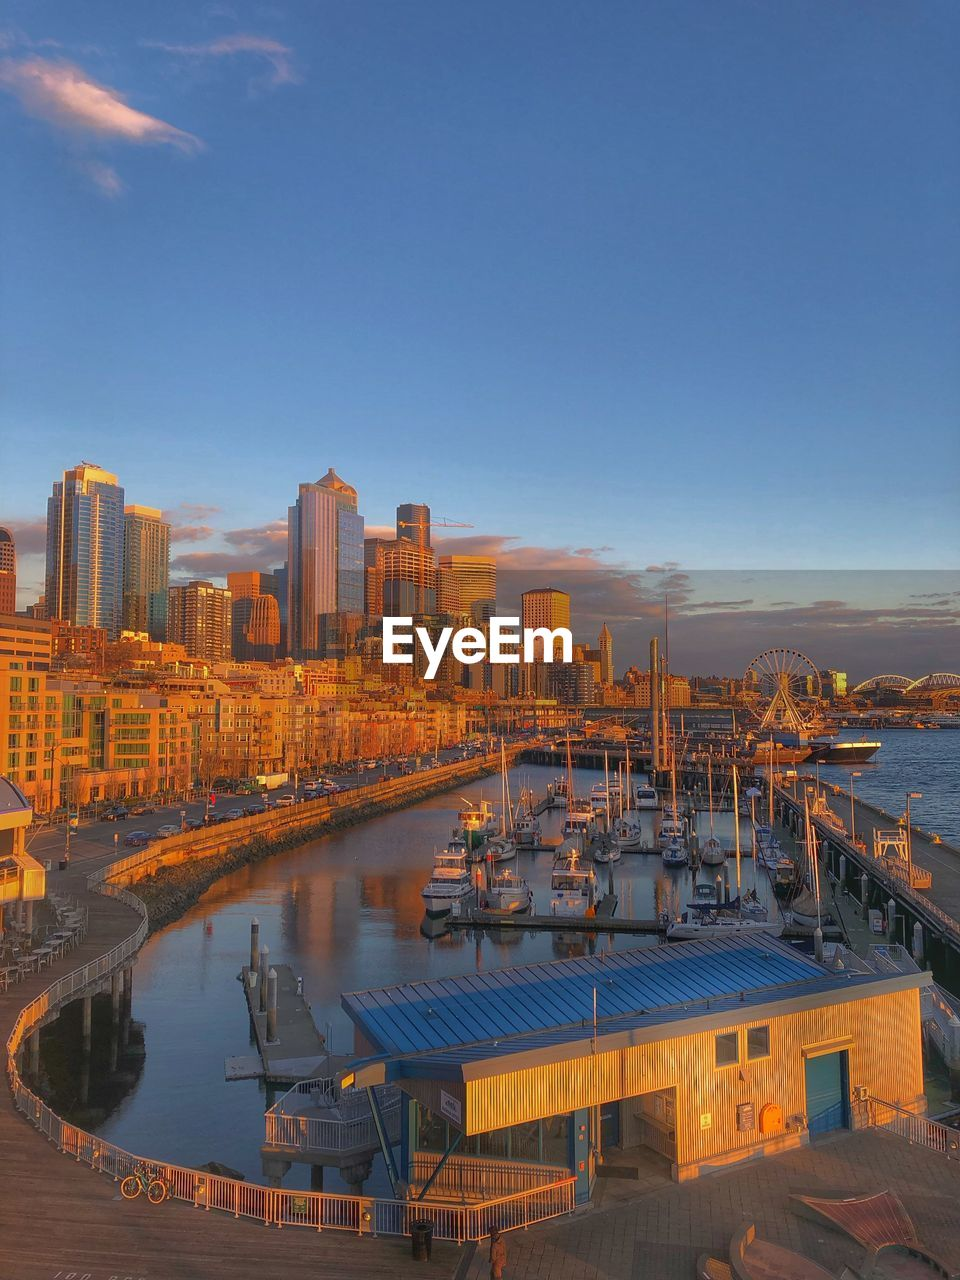 water, sky, architecture, building exterior, built structure, transportation, city, nature, reflection, river, no people, cityscape, high angle view, nautical vessel, building, outdoors, sunset, harbor, mode of transportation, office building exterior, skyscraper